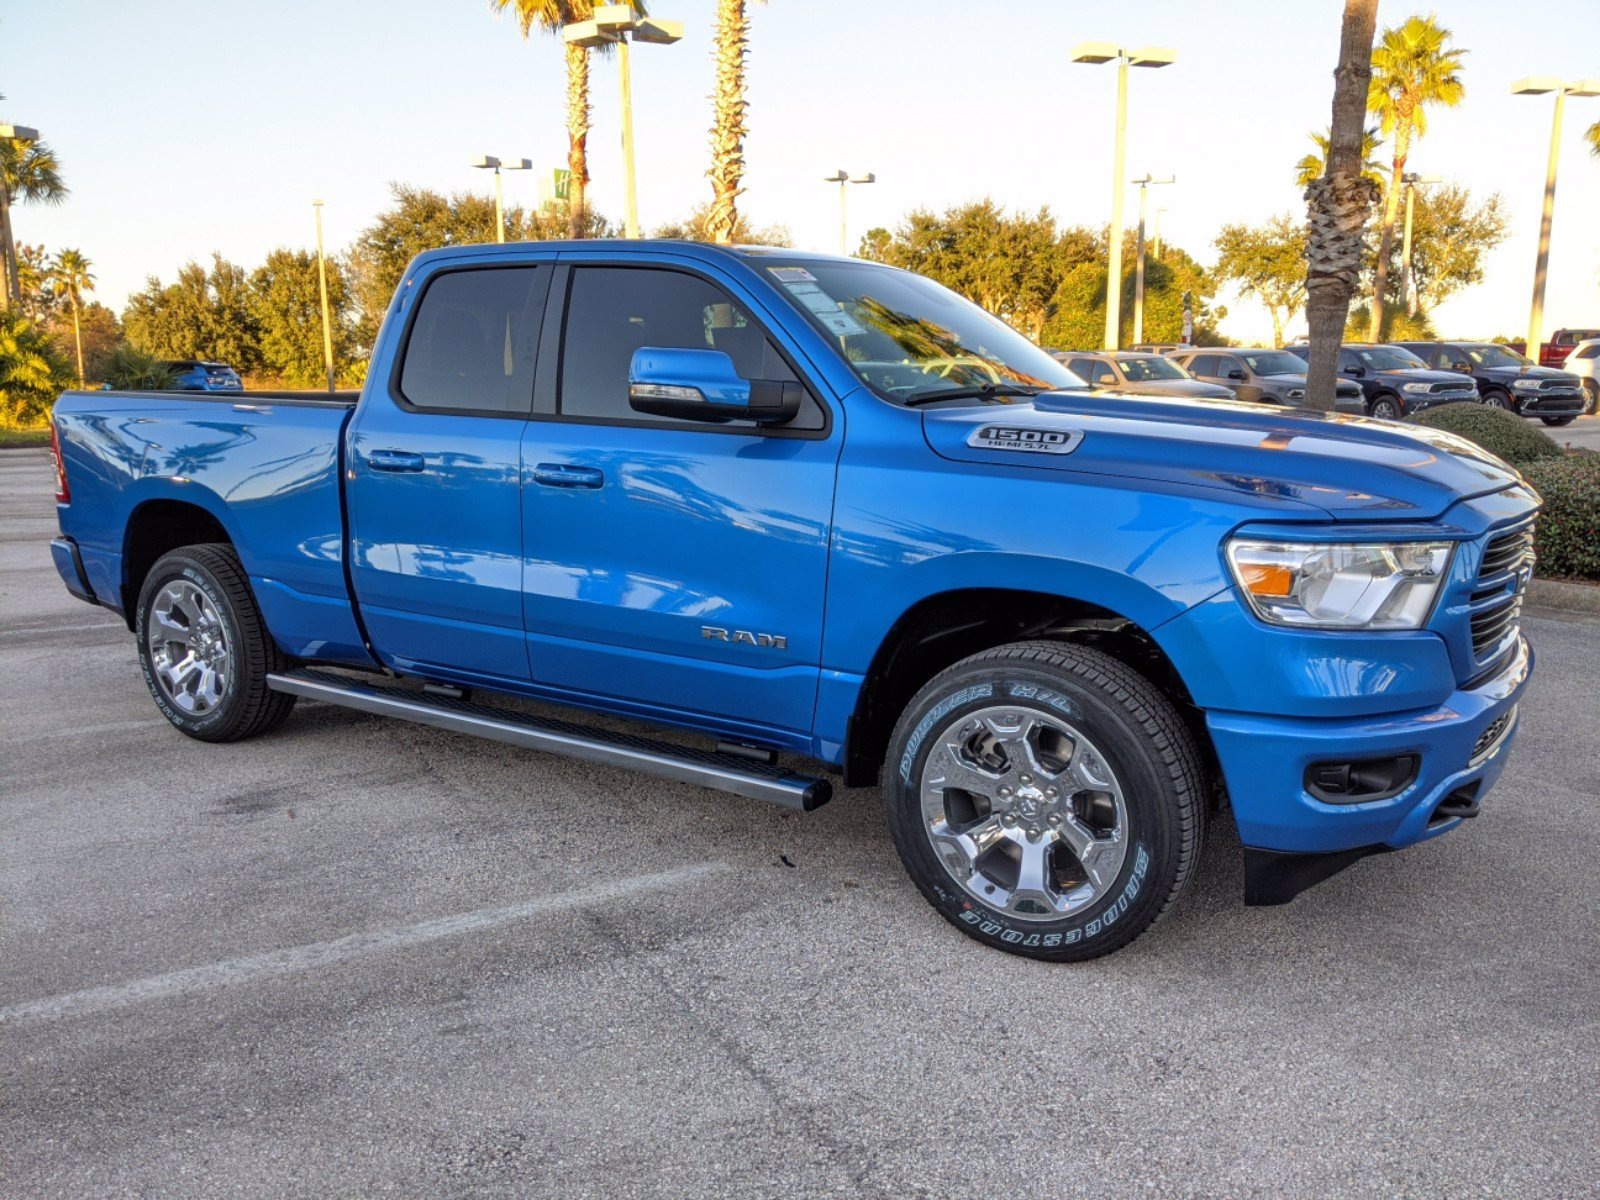 2021 Ram 1500 Quad Cab 4x4, Pickup #R21154 - photo 1